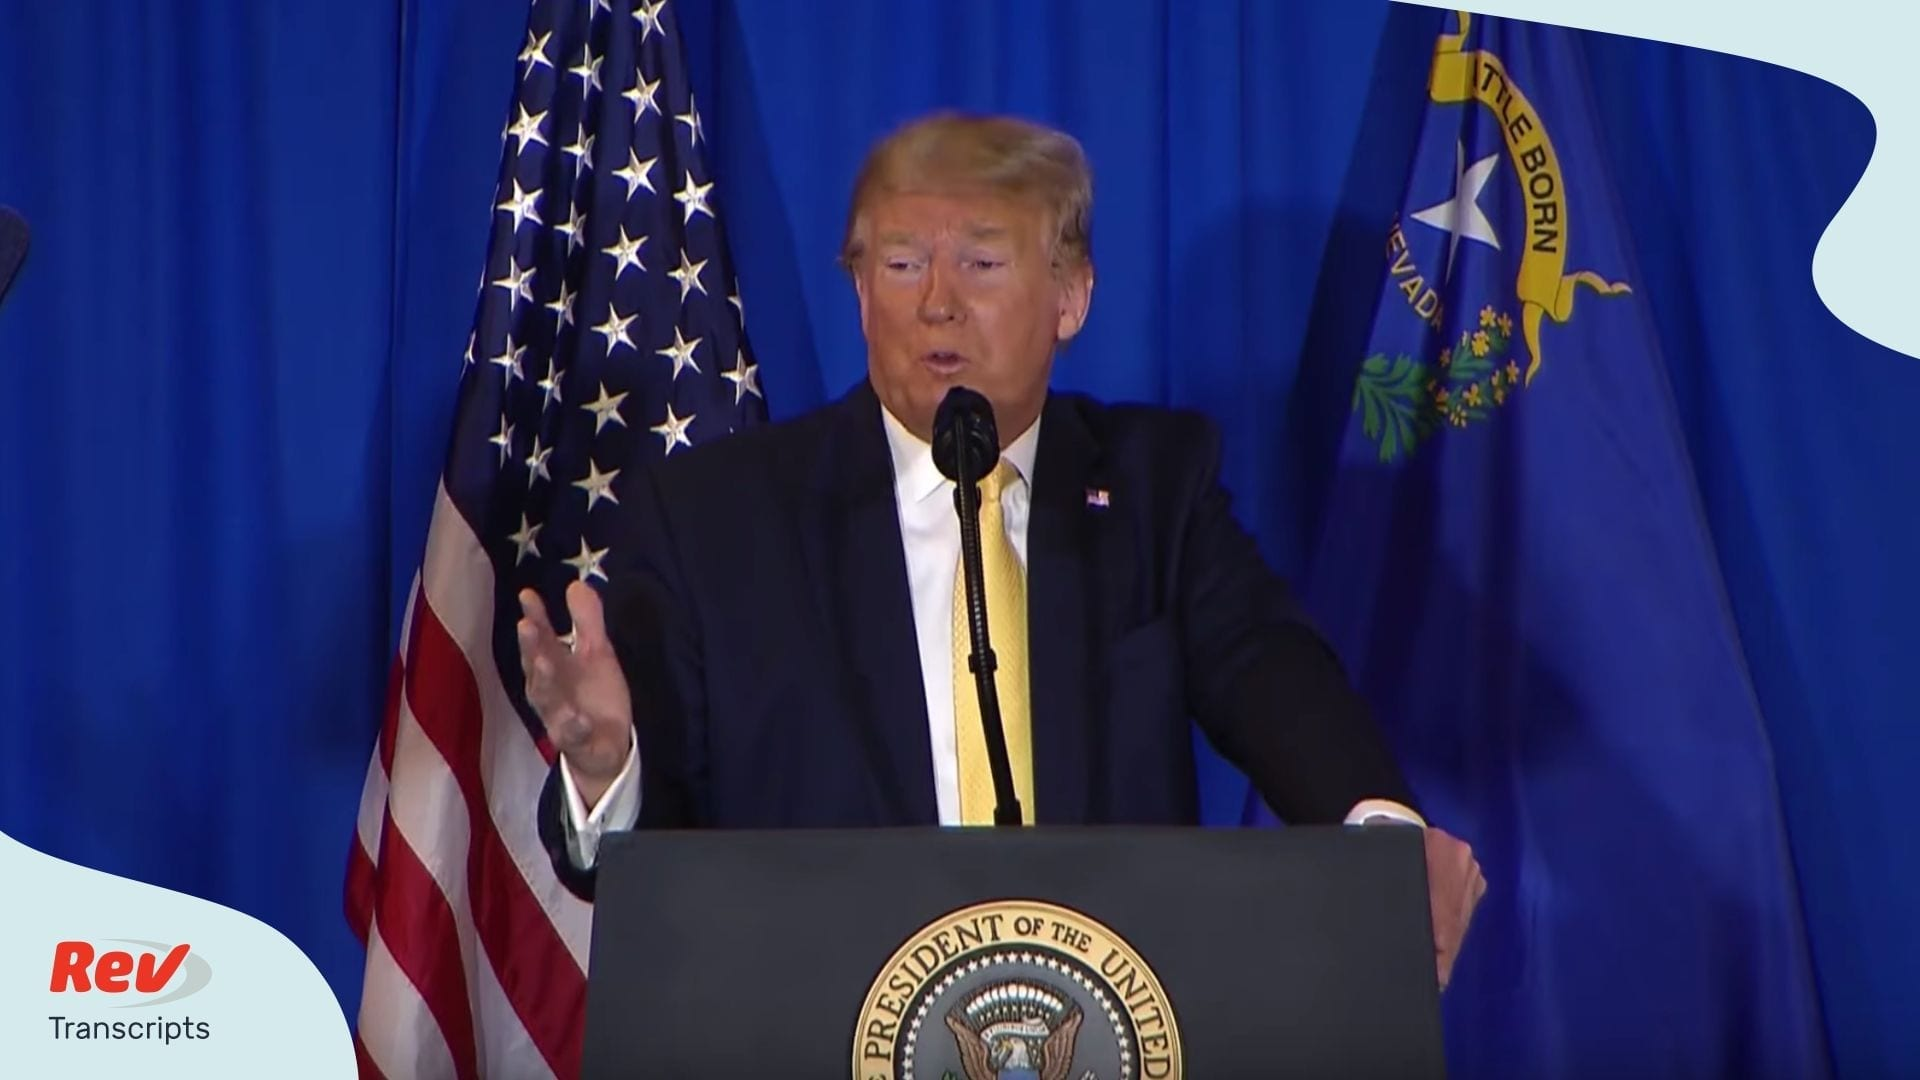 Donald Trump Speech Transcript at the Hope for Prisoners Graduation Ceremony